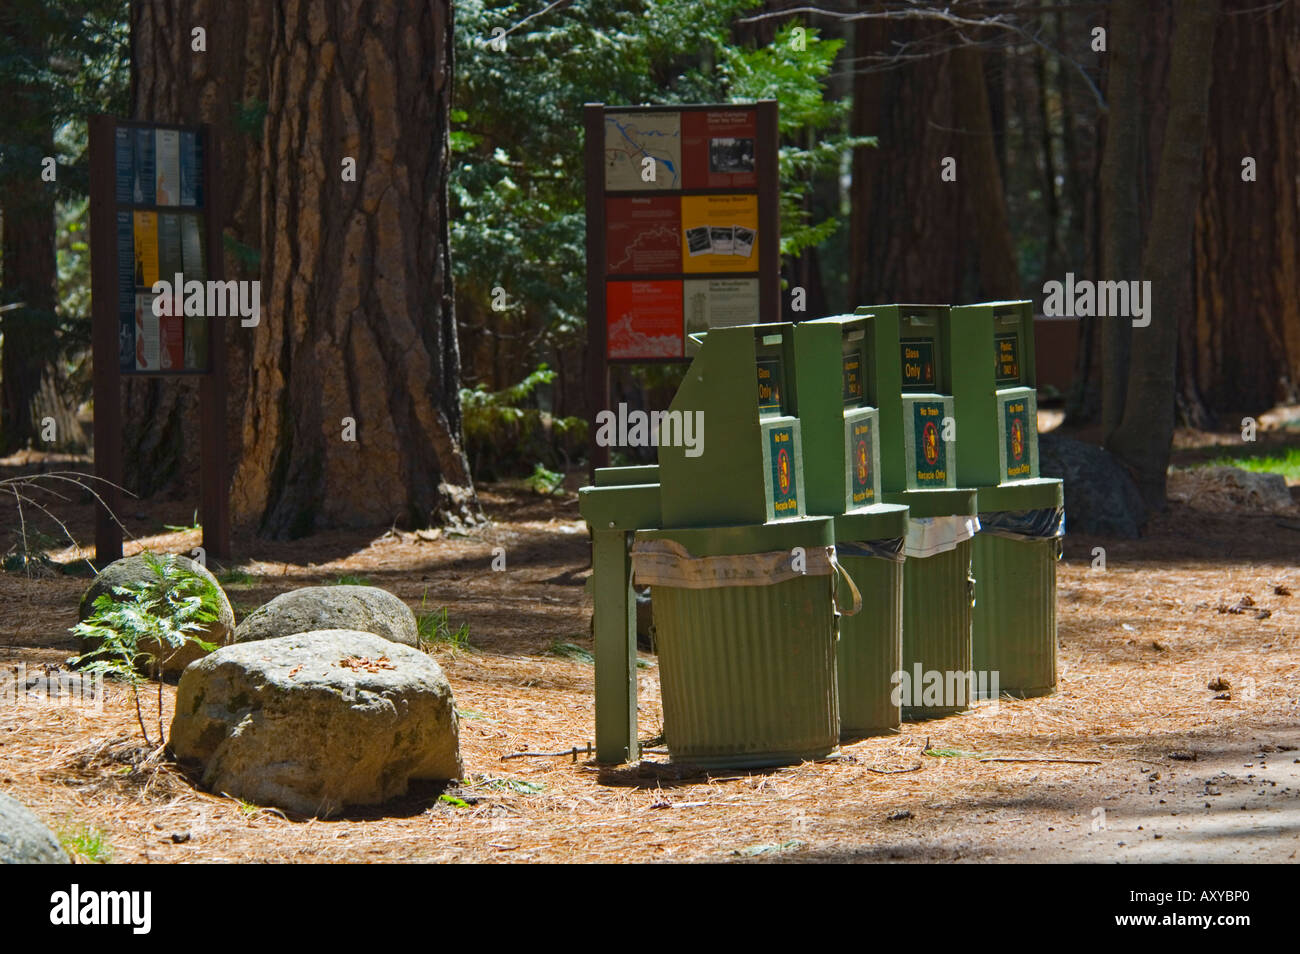 Bear Proof Trash Cans Stock Photos & Bear Proof Trash Cans Stock